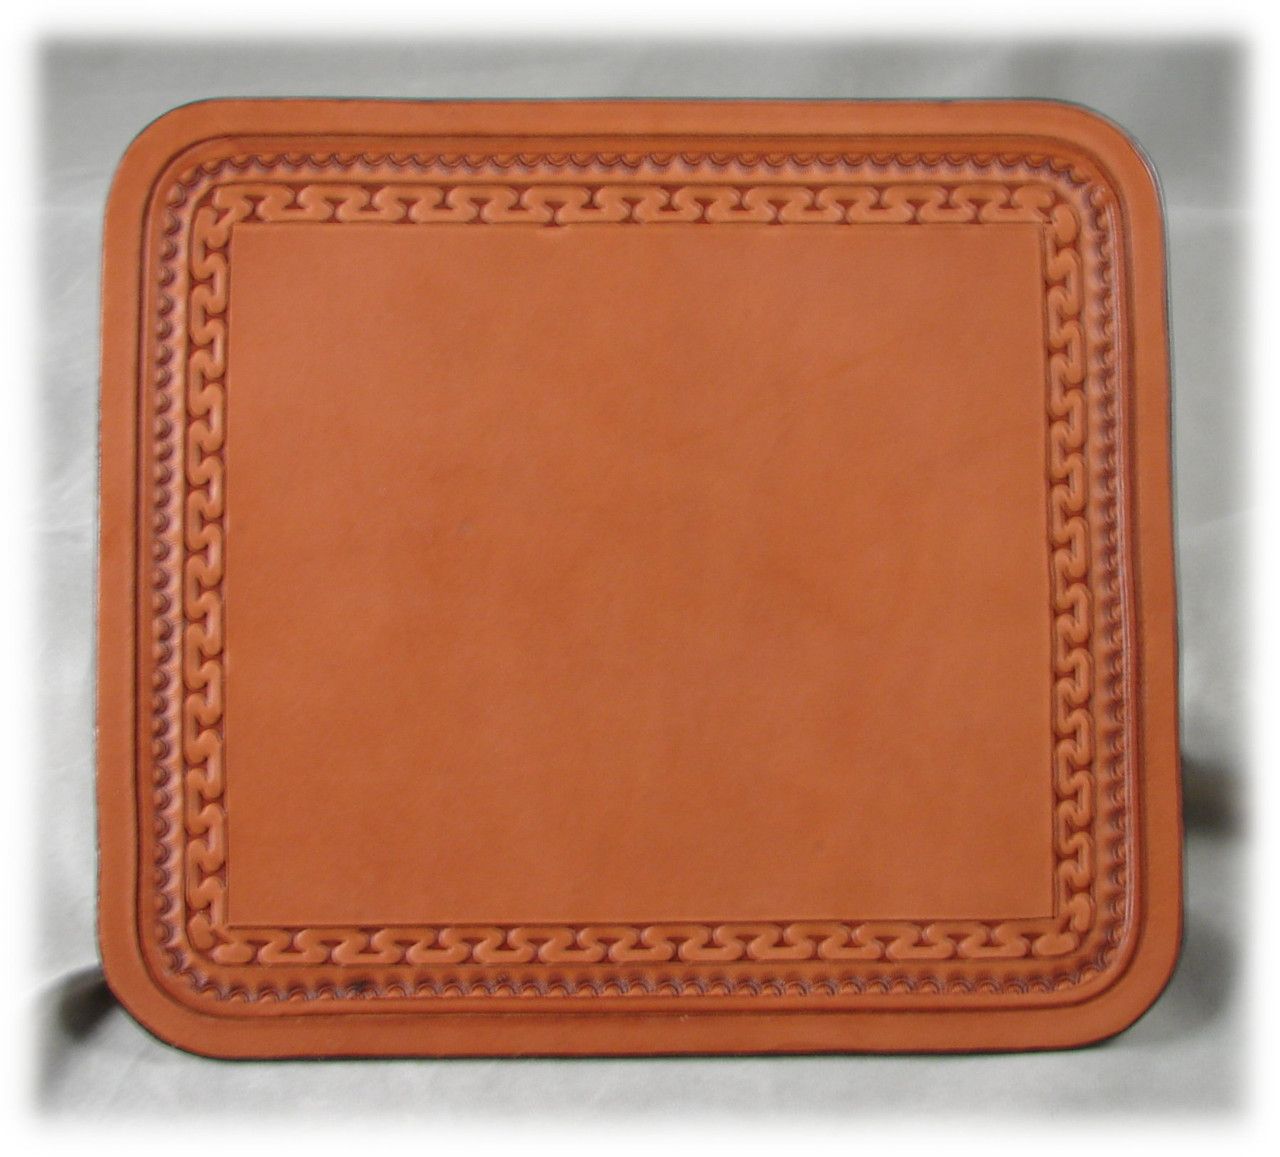 Rich Tan Leather Mouse Pad